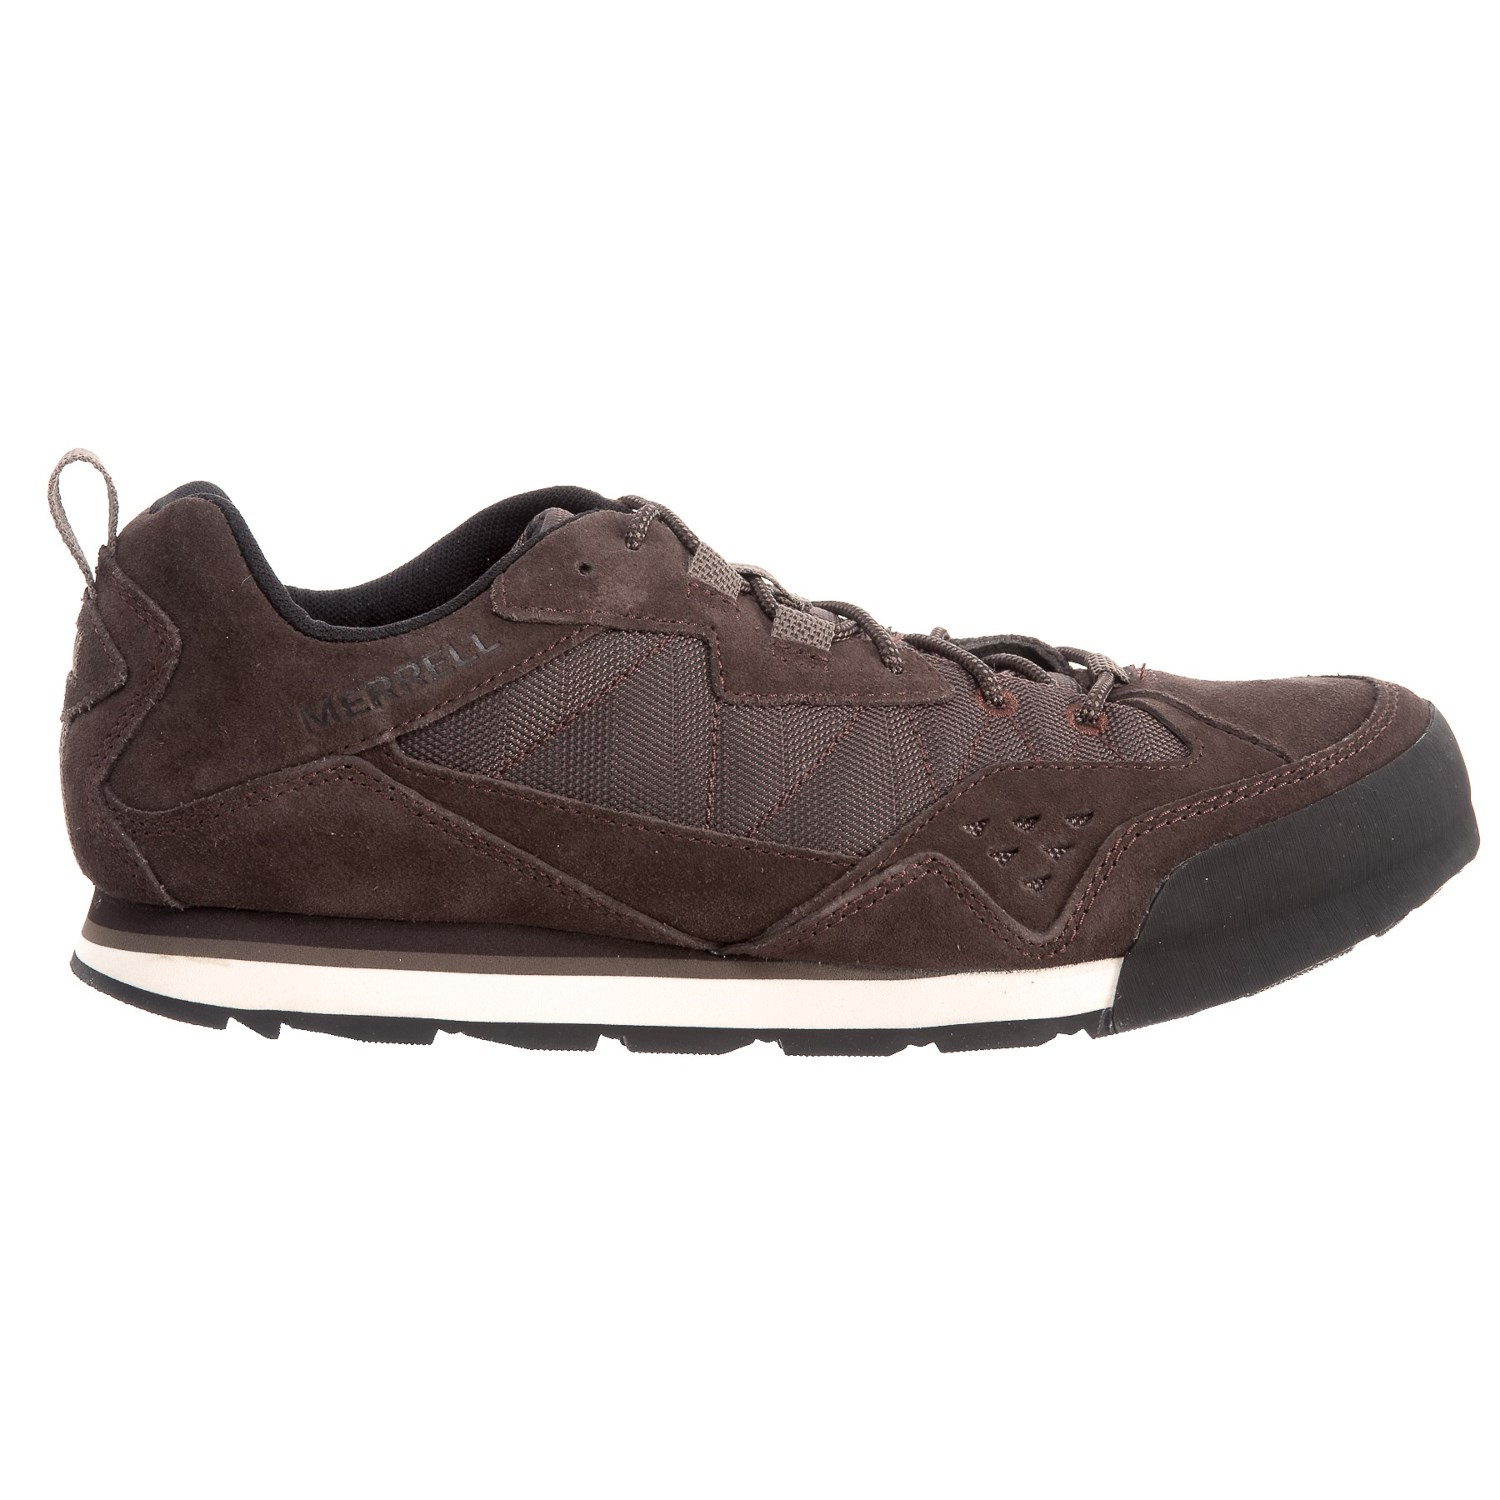 a3e06c7d39cab Merrell Burnt Rock Tura Rugged Casual Sneakers (For Men) - Save 83%